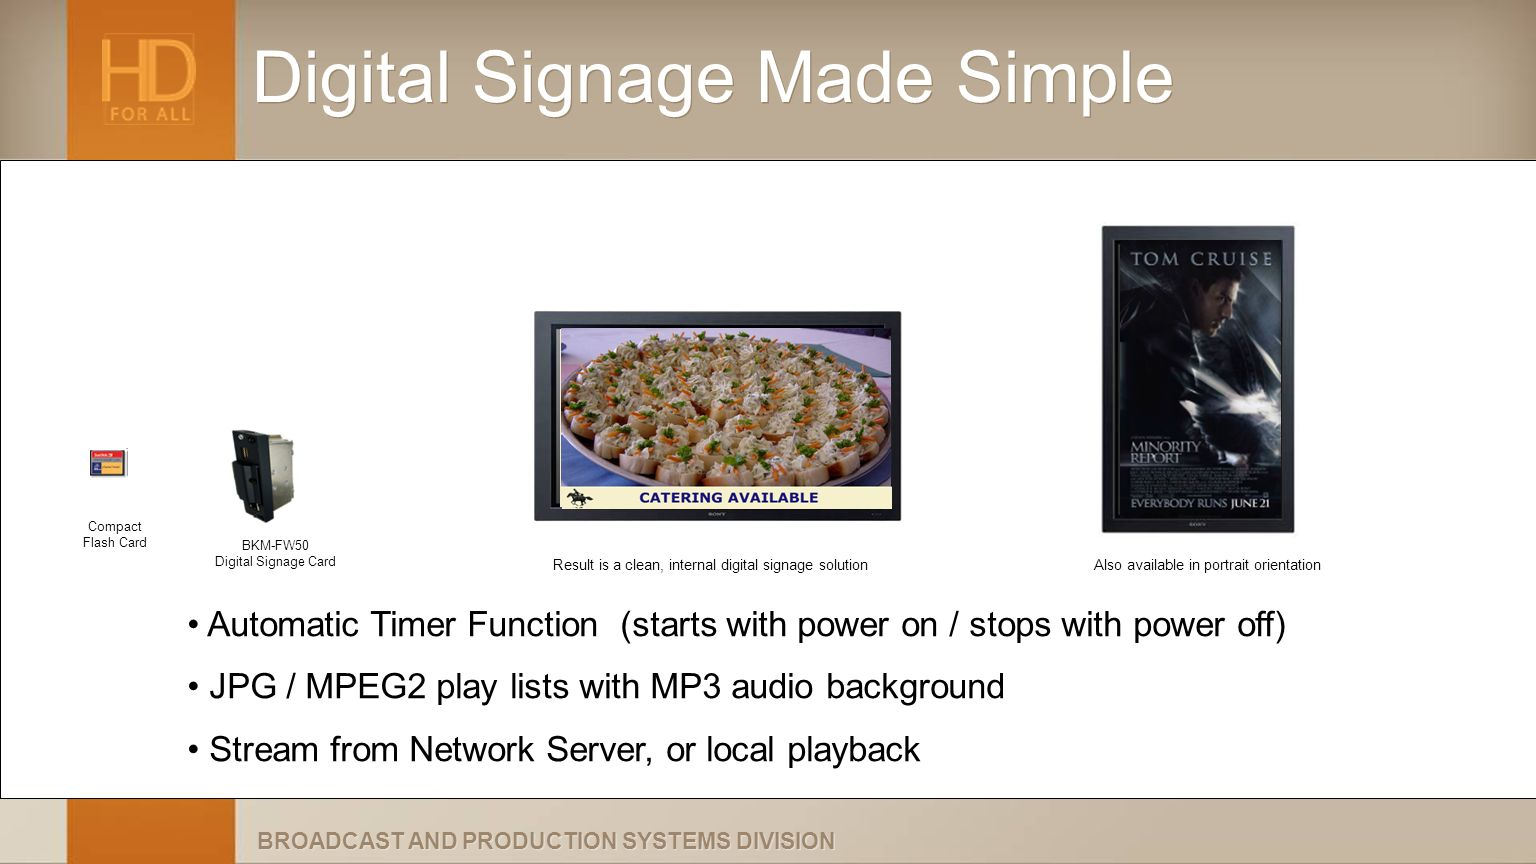 Digital Signage Made Simple